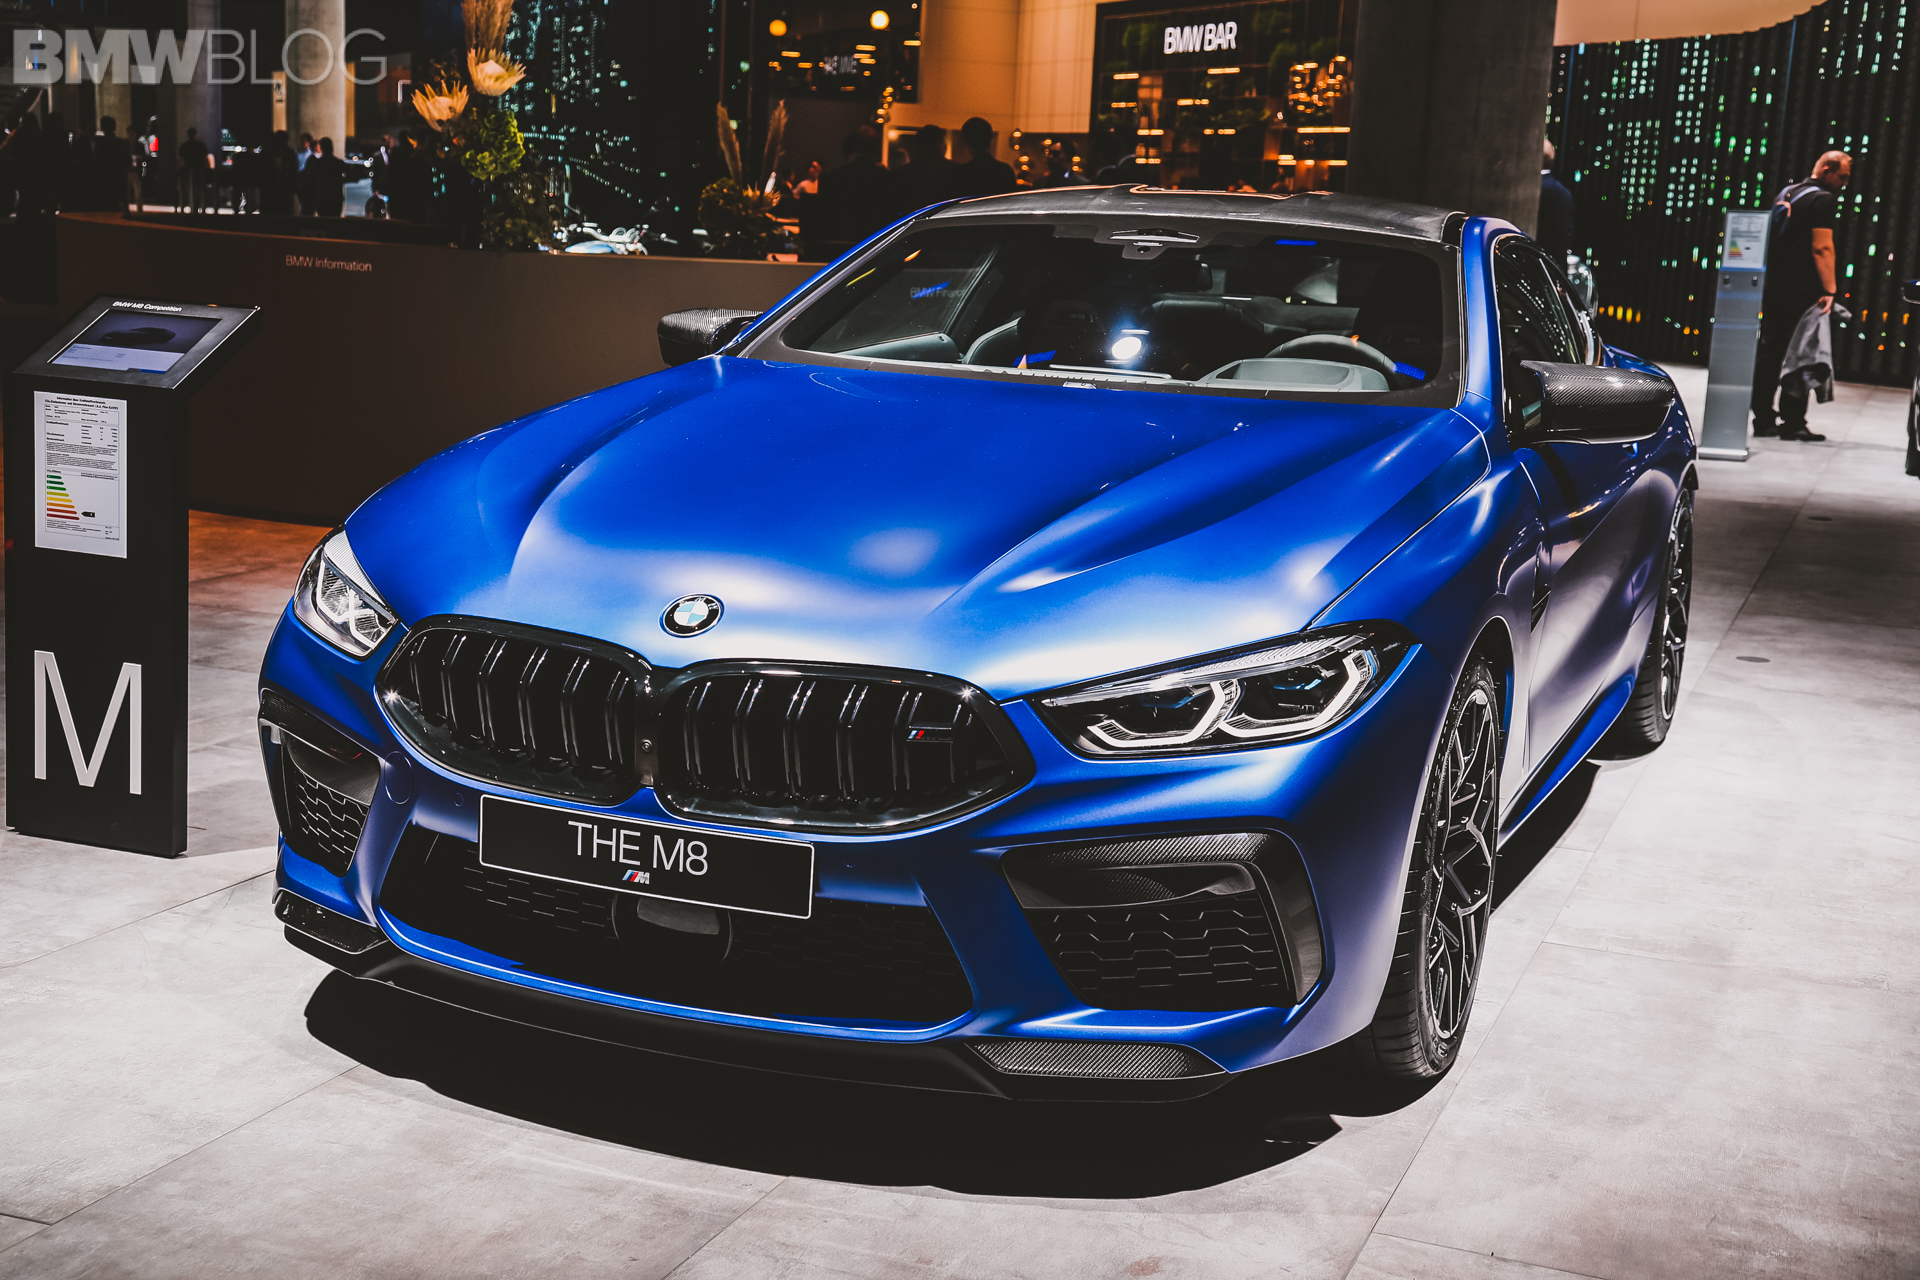 BMW European Delivery >> 2020 BMW M8 Coupe in Frozen Marina Bay Blue - Best Color Yet?